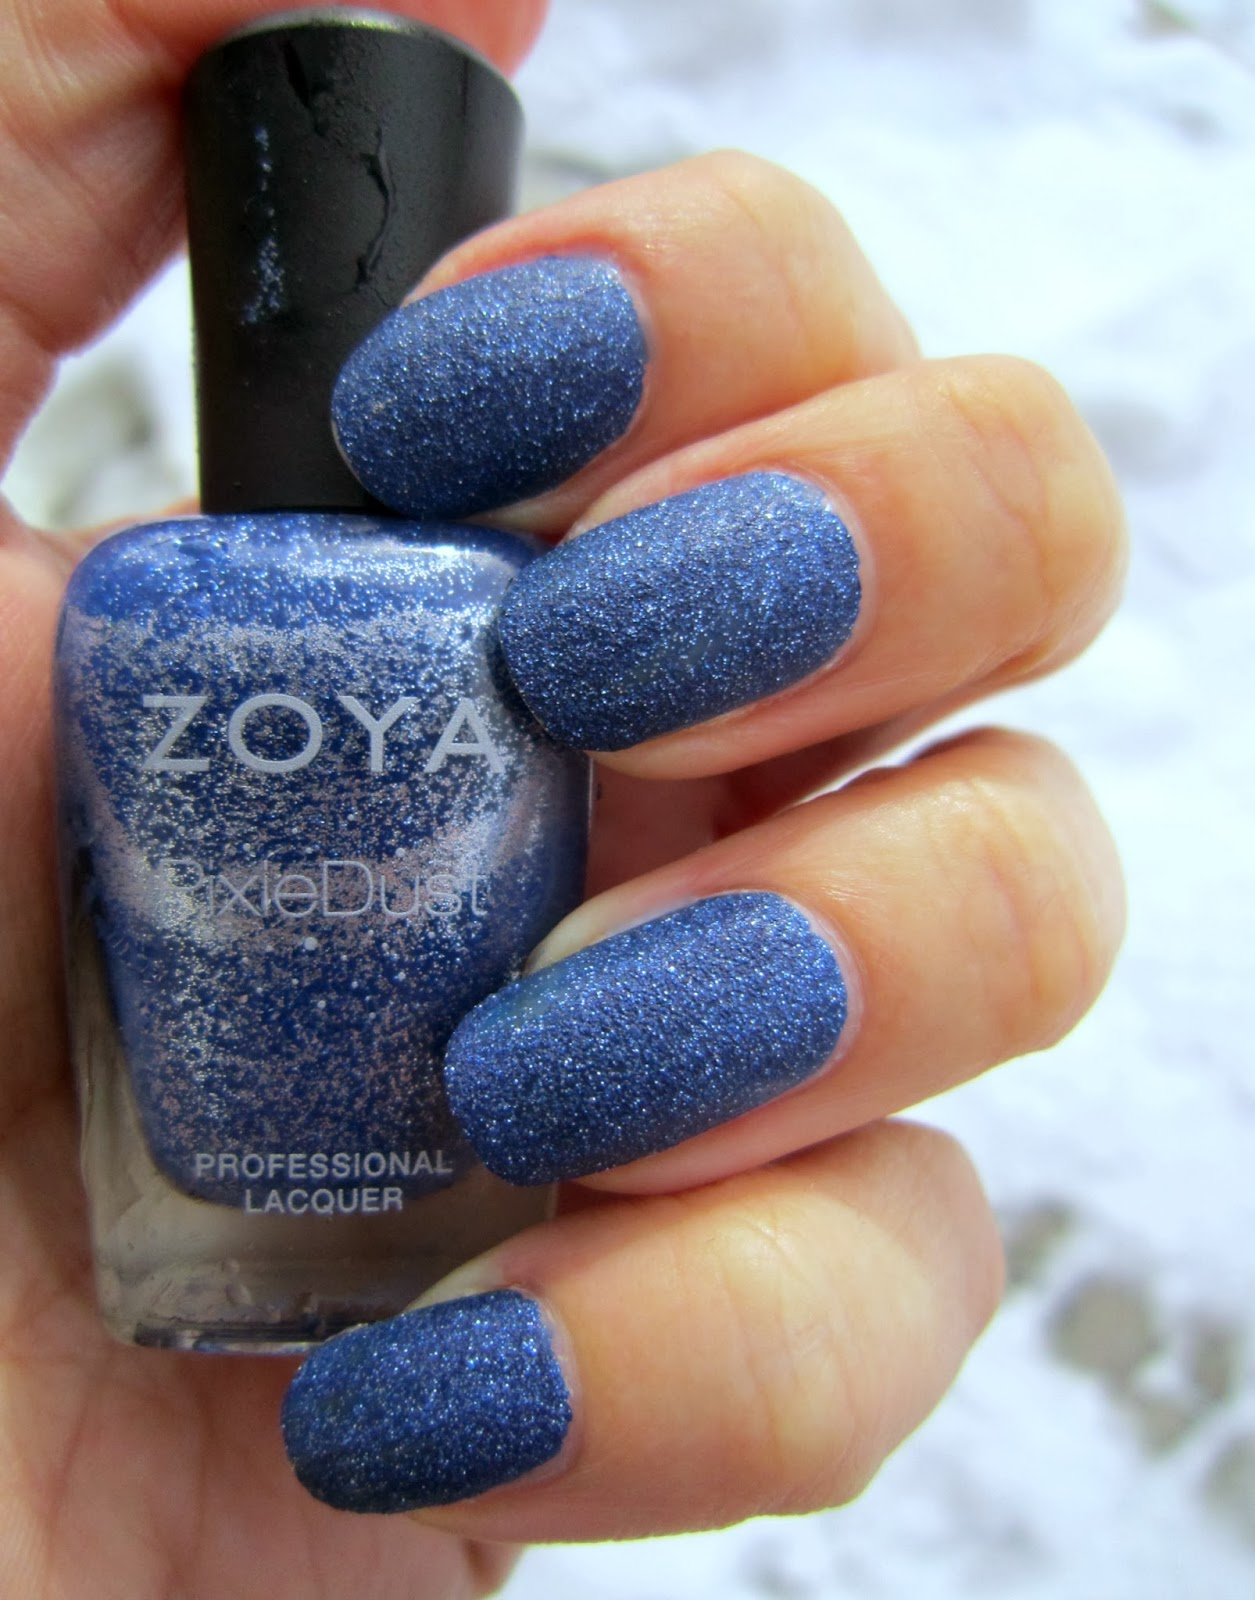 Zoya Sunshine is from the Pixie Dust Fall 2013 collection   My regular    Zoya Sunshine Pixie Dust